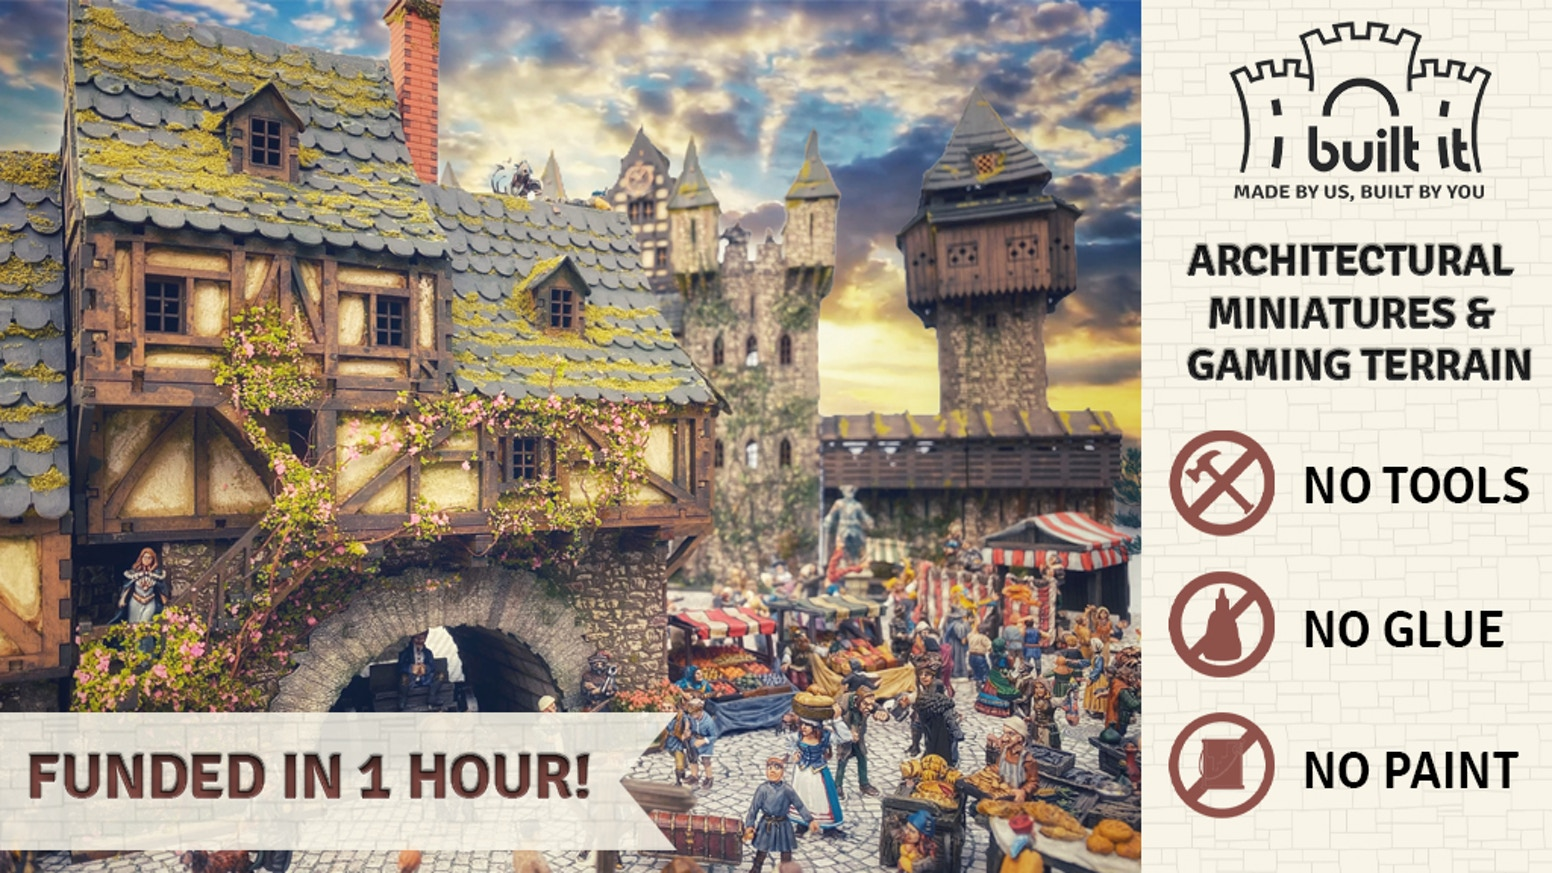 Build your own medieval castles and villages, and attack them with real working siege engines! No glue, tools, or paint required!